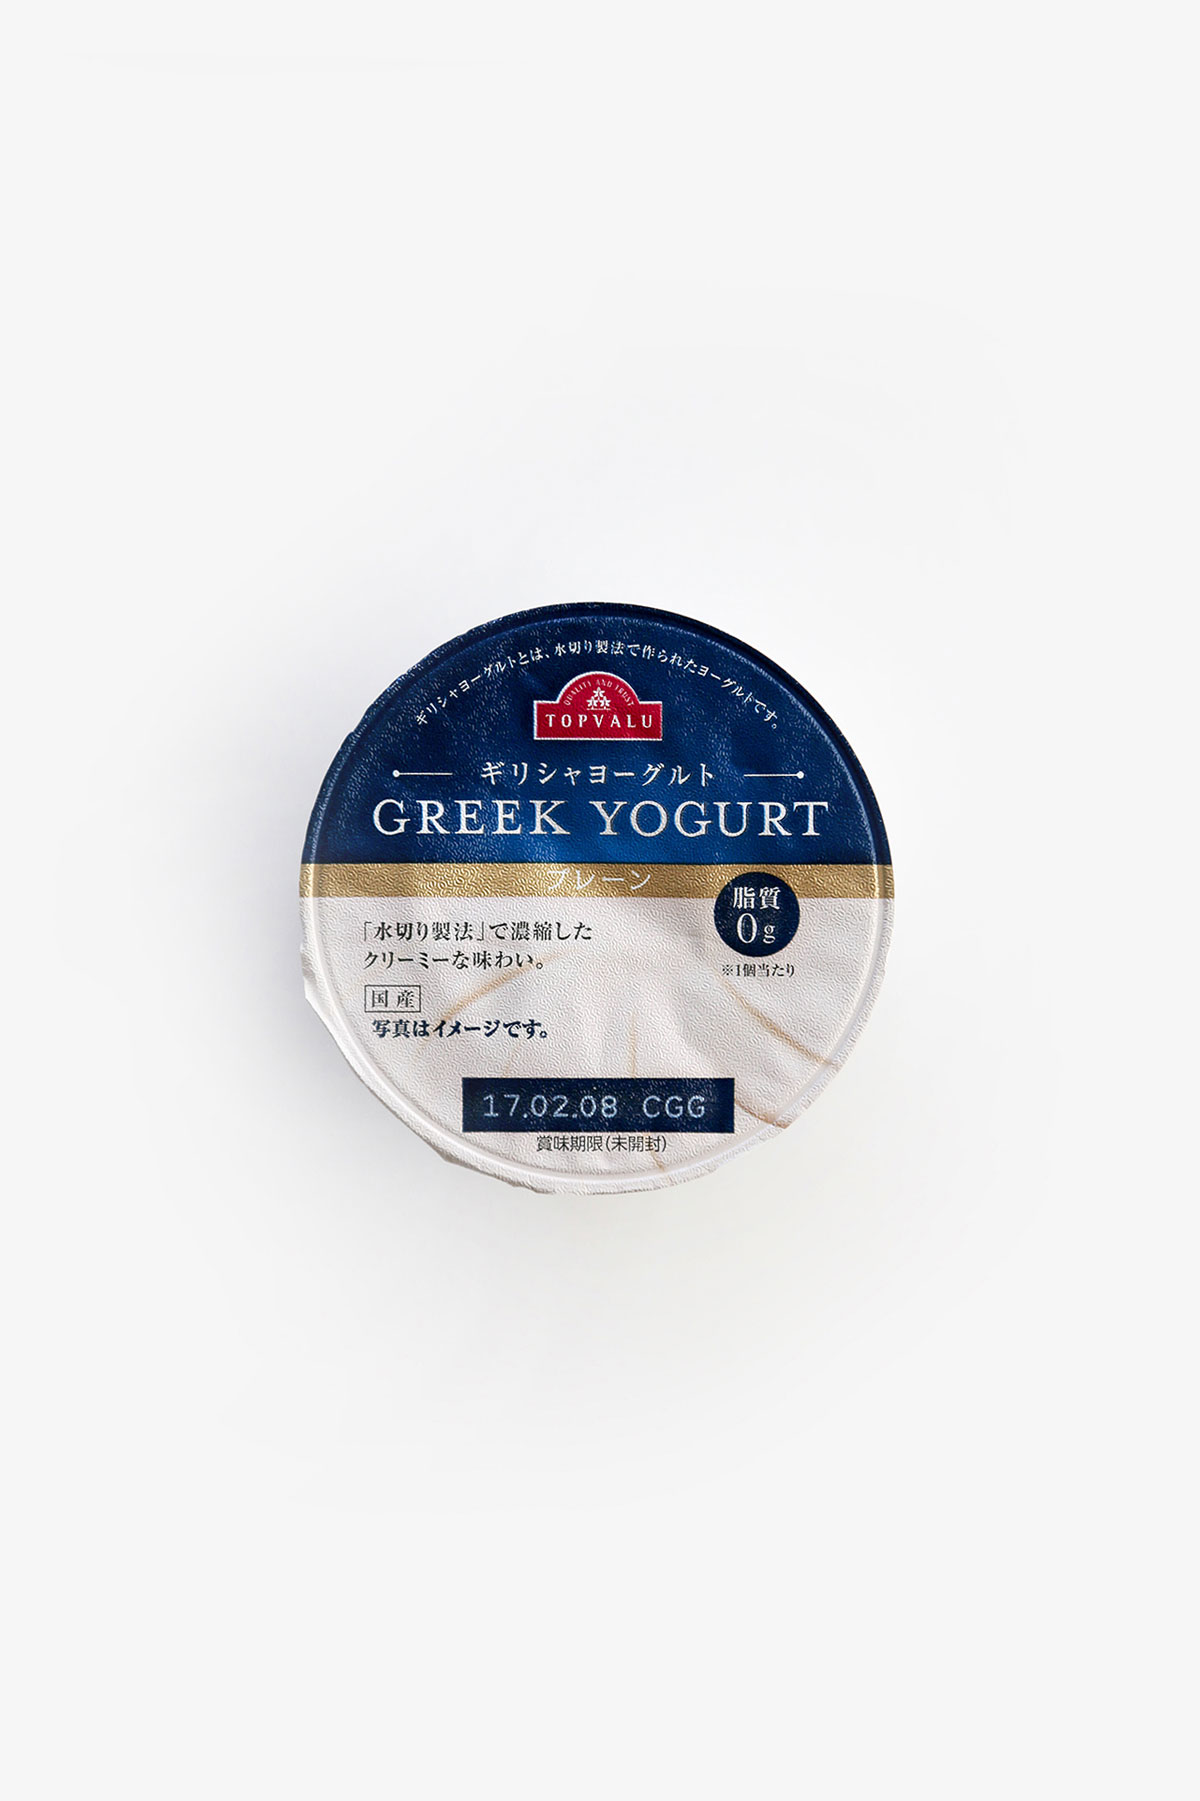 Keto Yoghurt, a guide to keto foods for low carb. keto, keto ingredients, keto foods, keto dairy, ketogenic diet, ketogenic dairy, keto shopping list, low carb, low carb foods, low carb dairy, lchf, lchf foods, lchf dairy